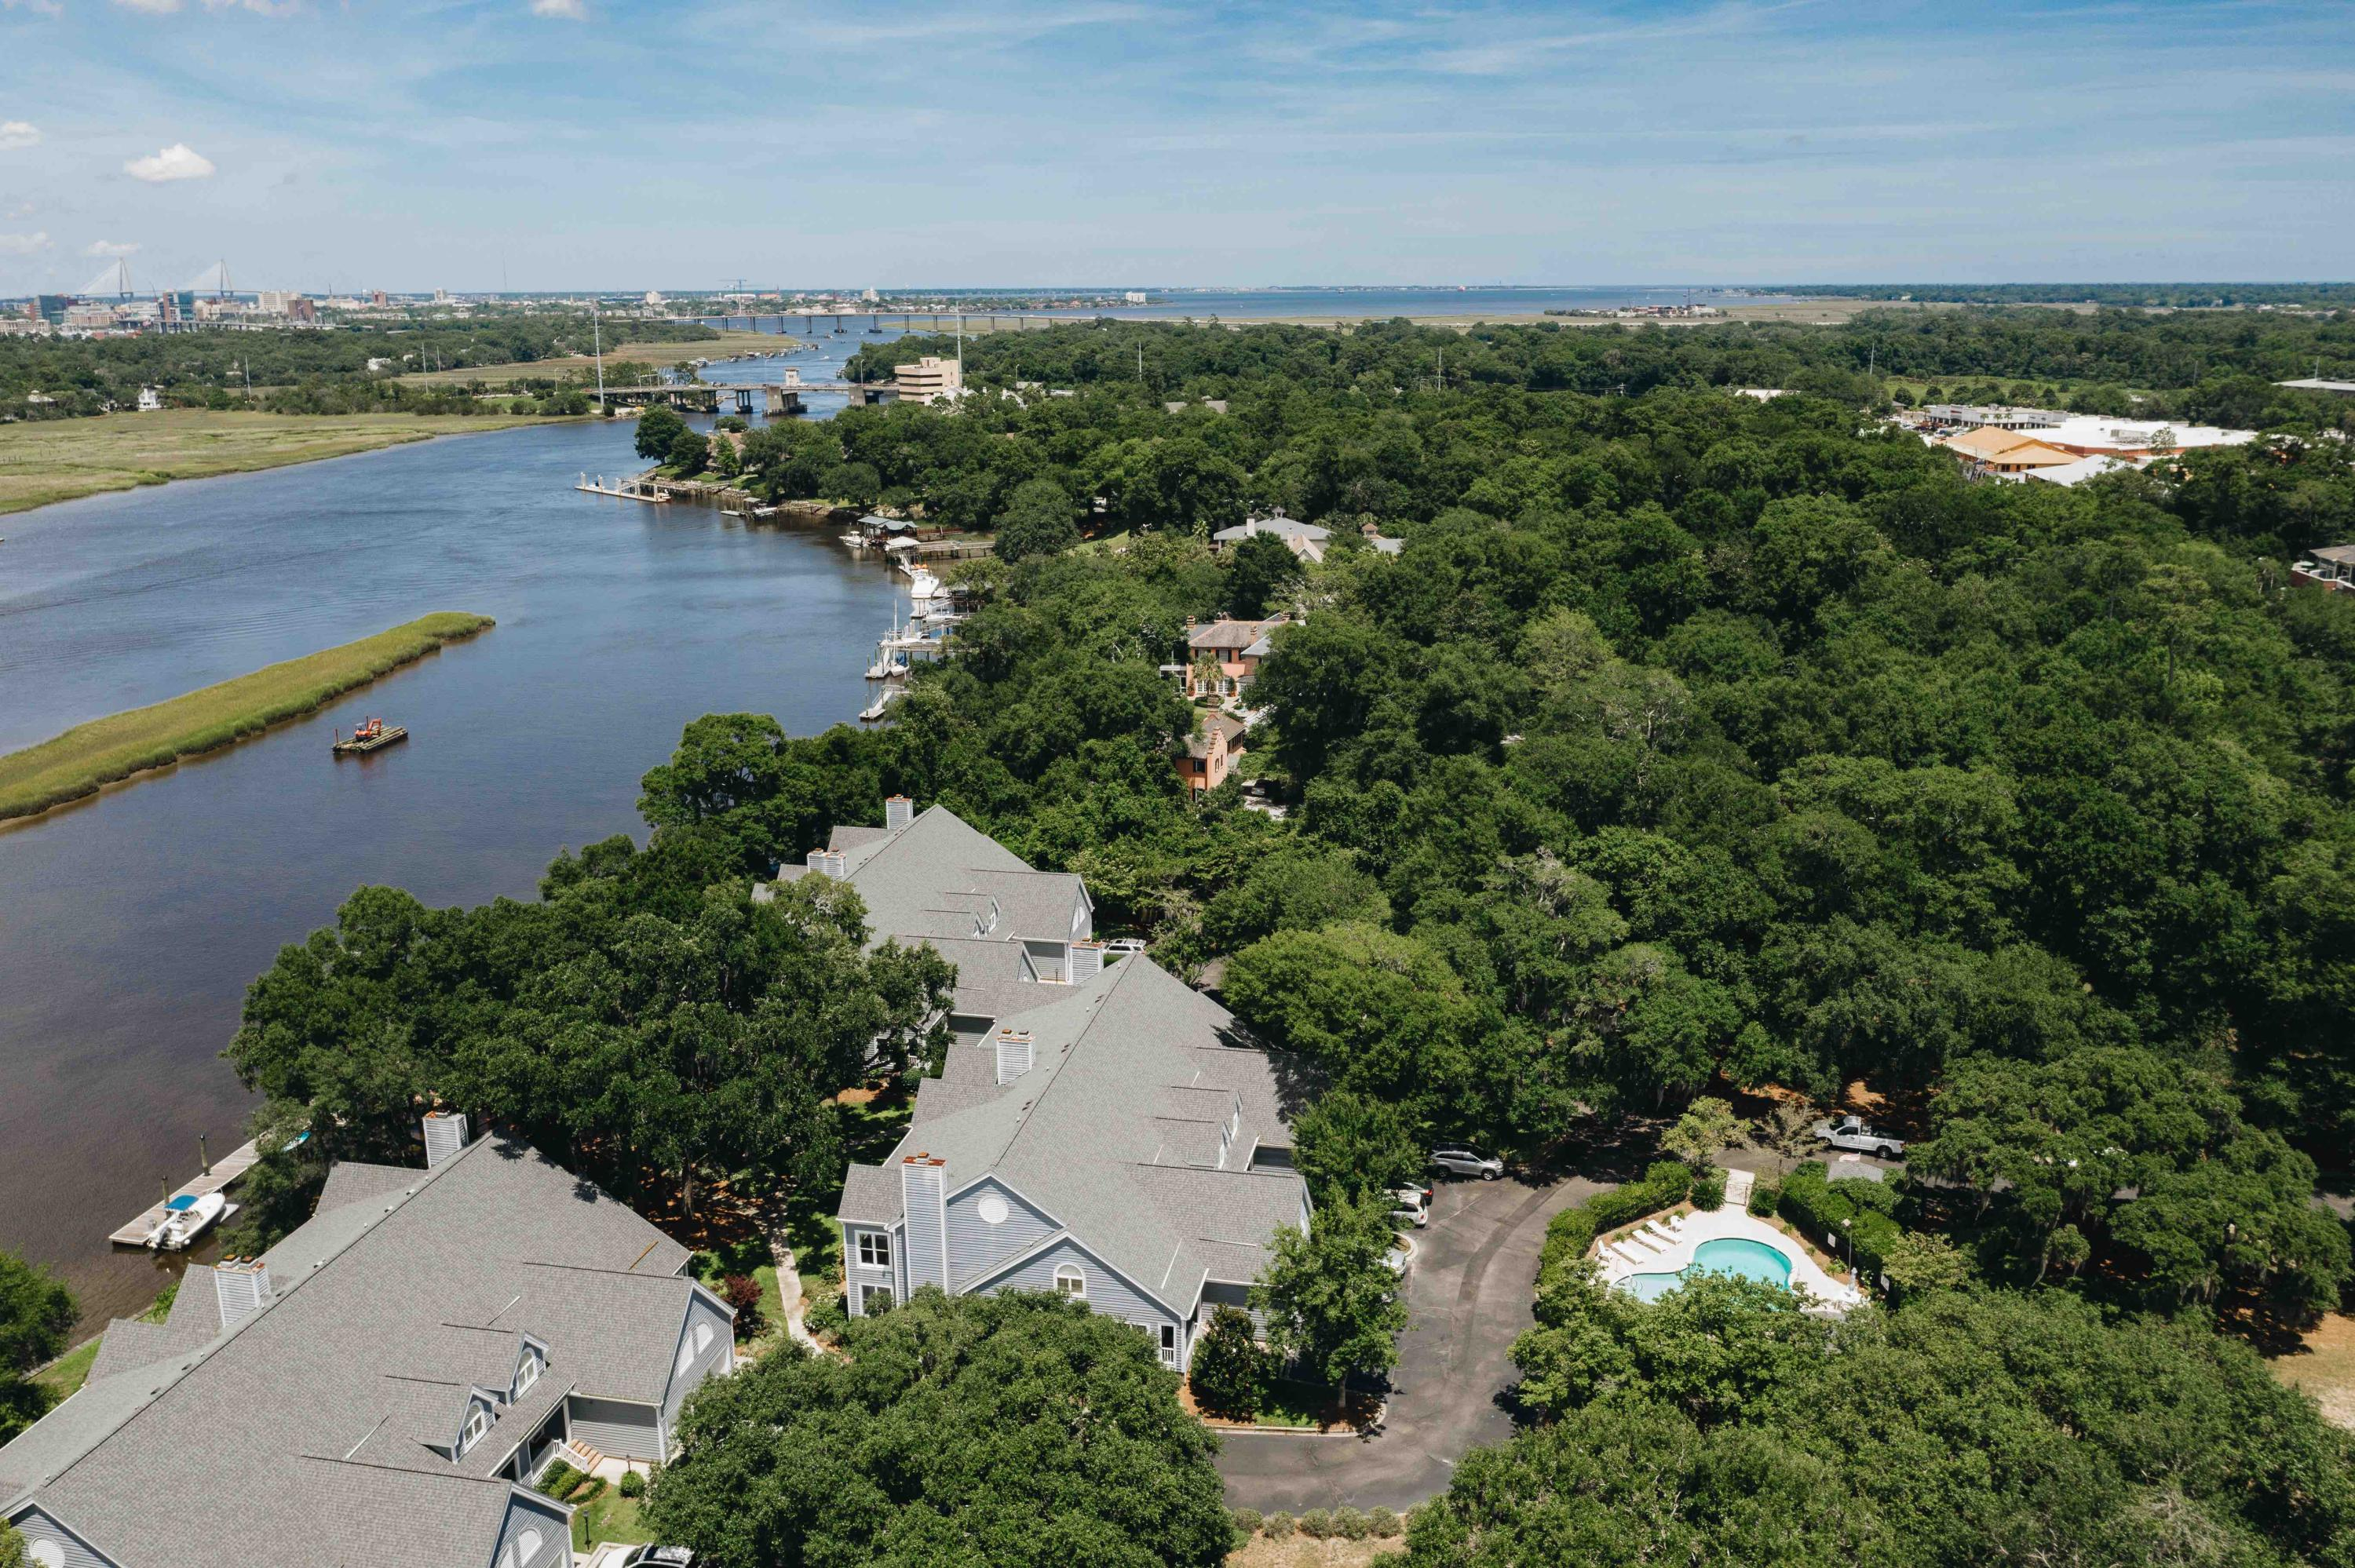 Waterfront Plantation Homes For Sale - 107 Waterfront Plantation, Charleston, SC - 13